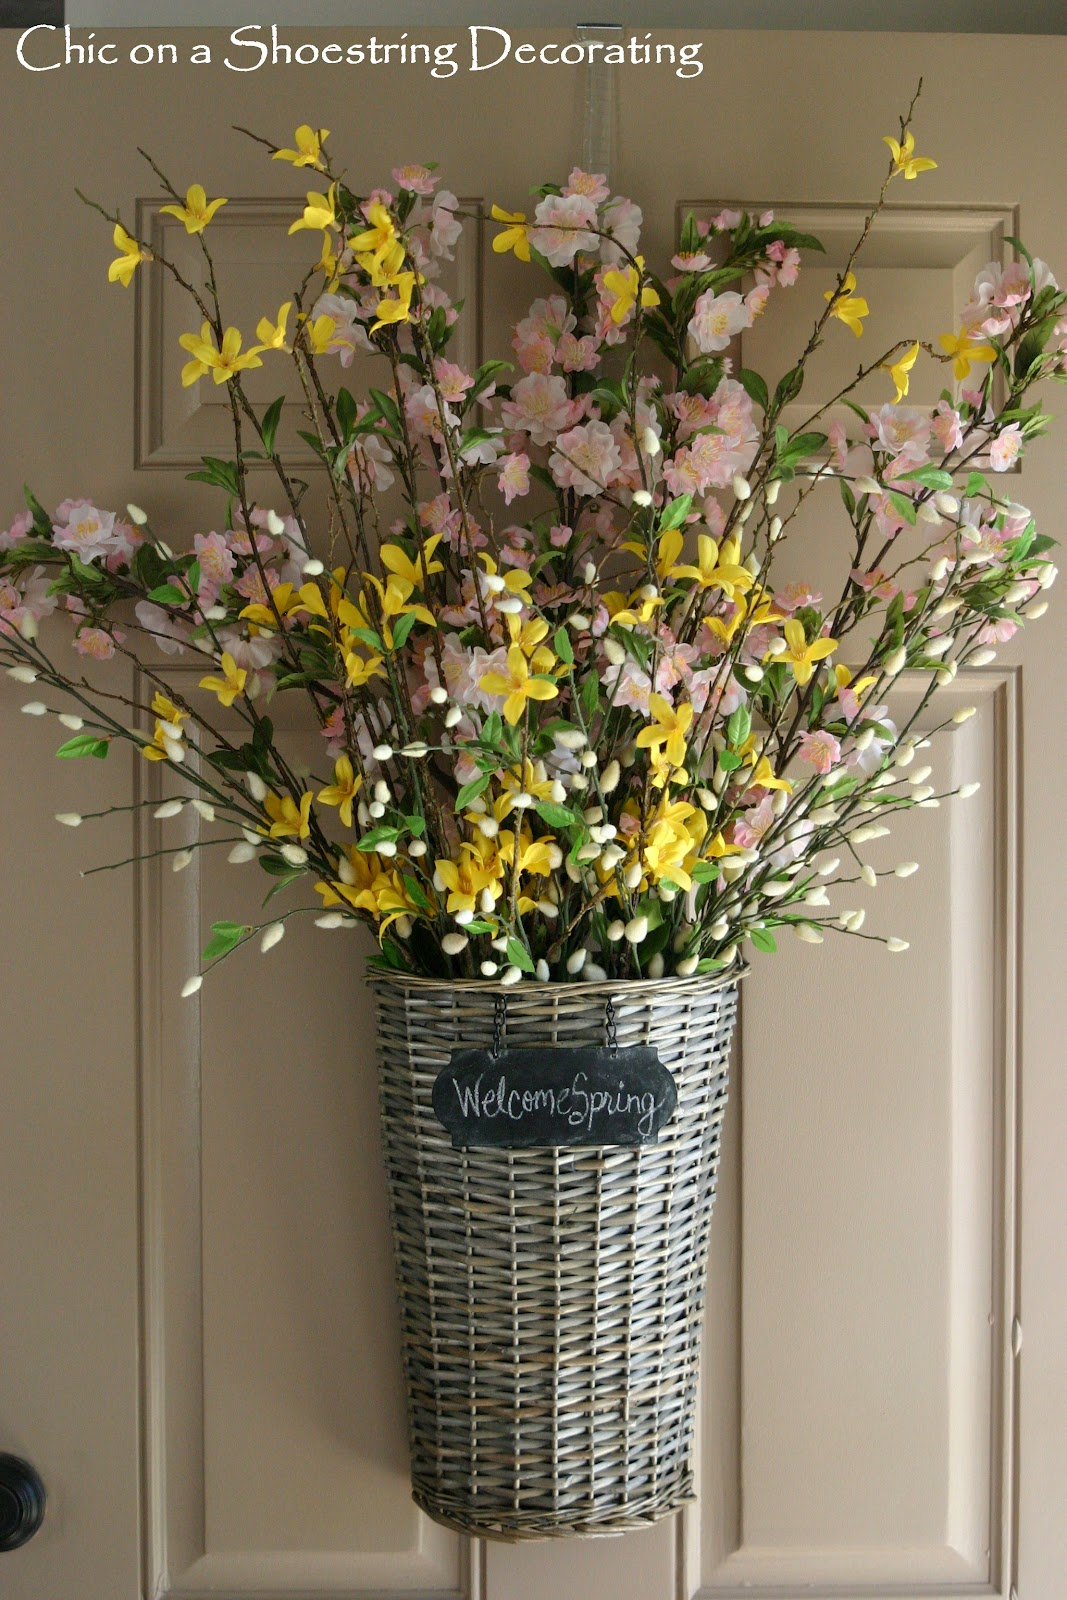 Chic on a shoestring decorating spring front door decor for Front door decor